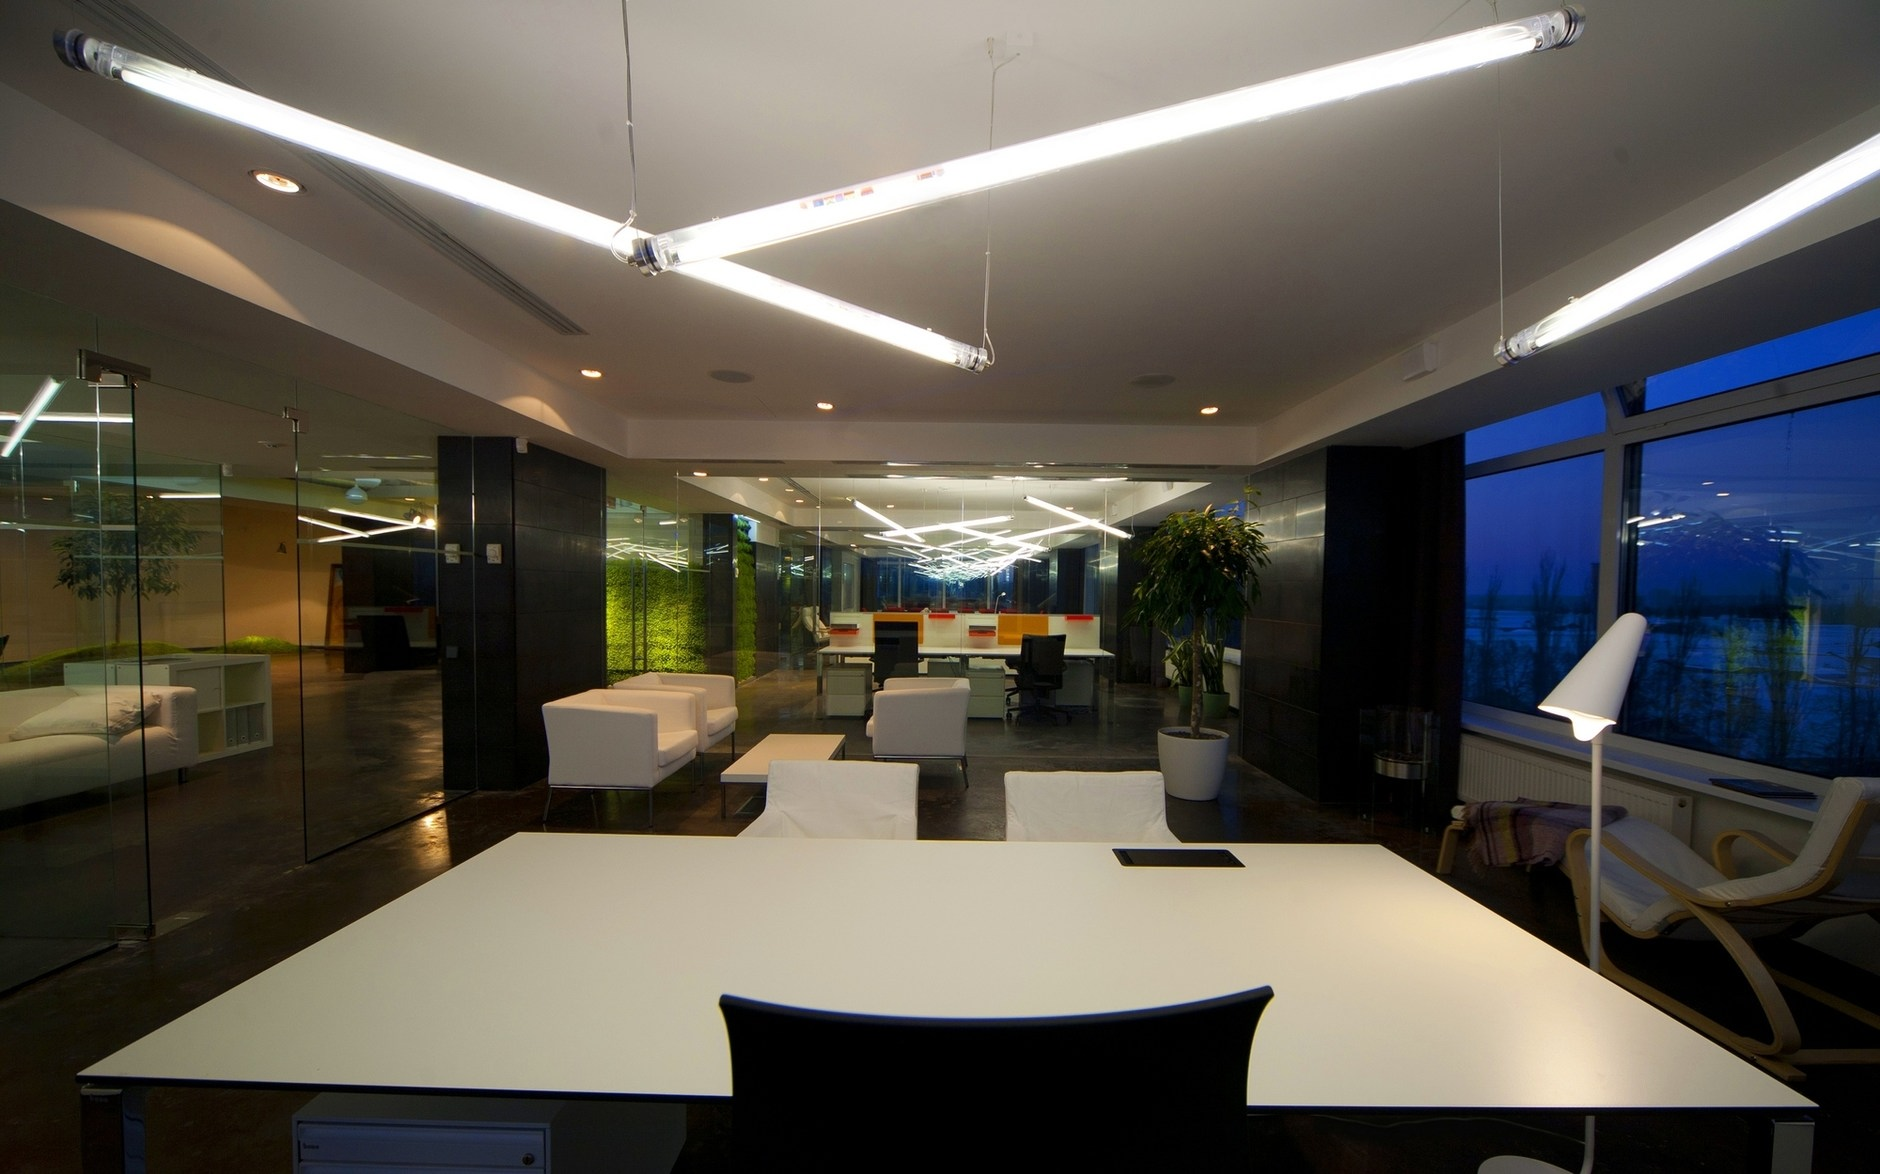 Office of technology company by tseh architectural group for Technology office design